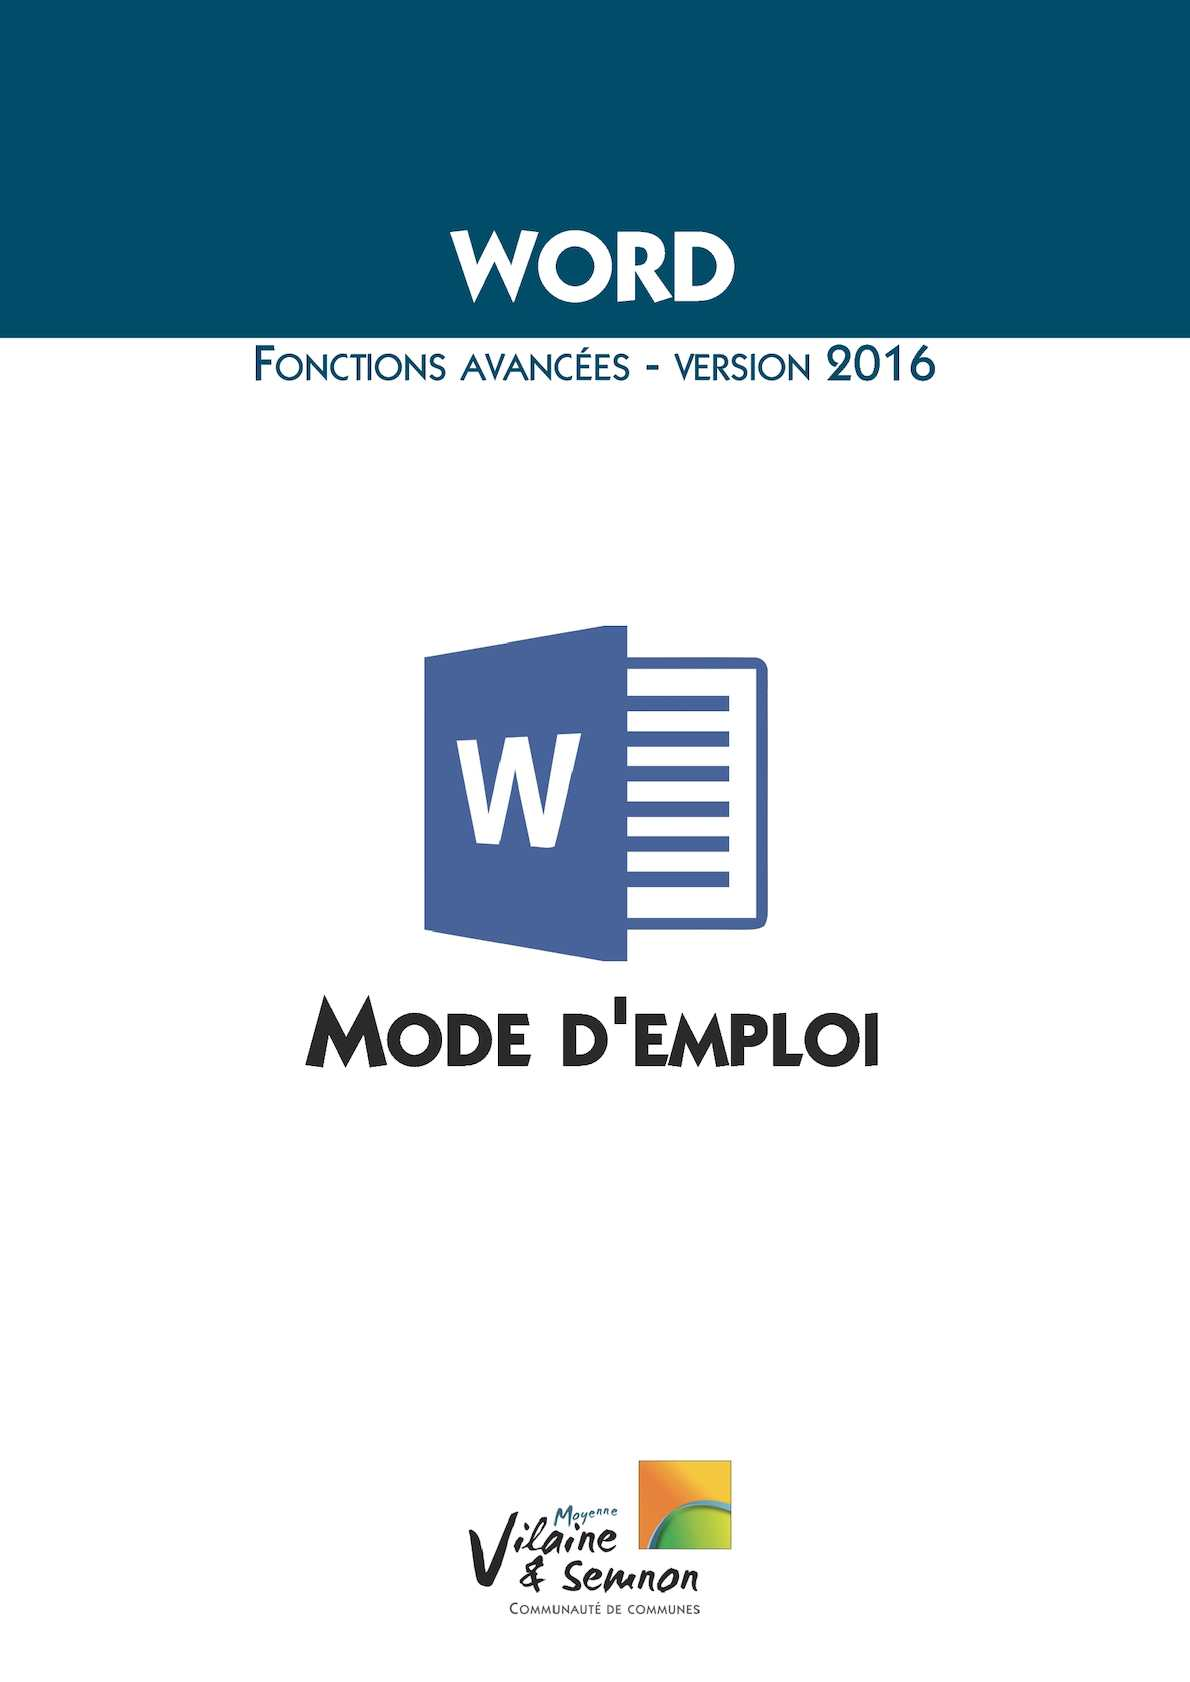 Calam o word 2016 mode d 39 emploi for Alarme verisure mode d emploi